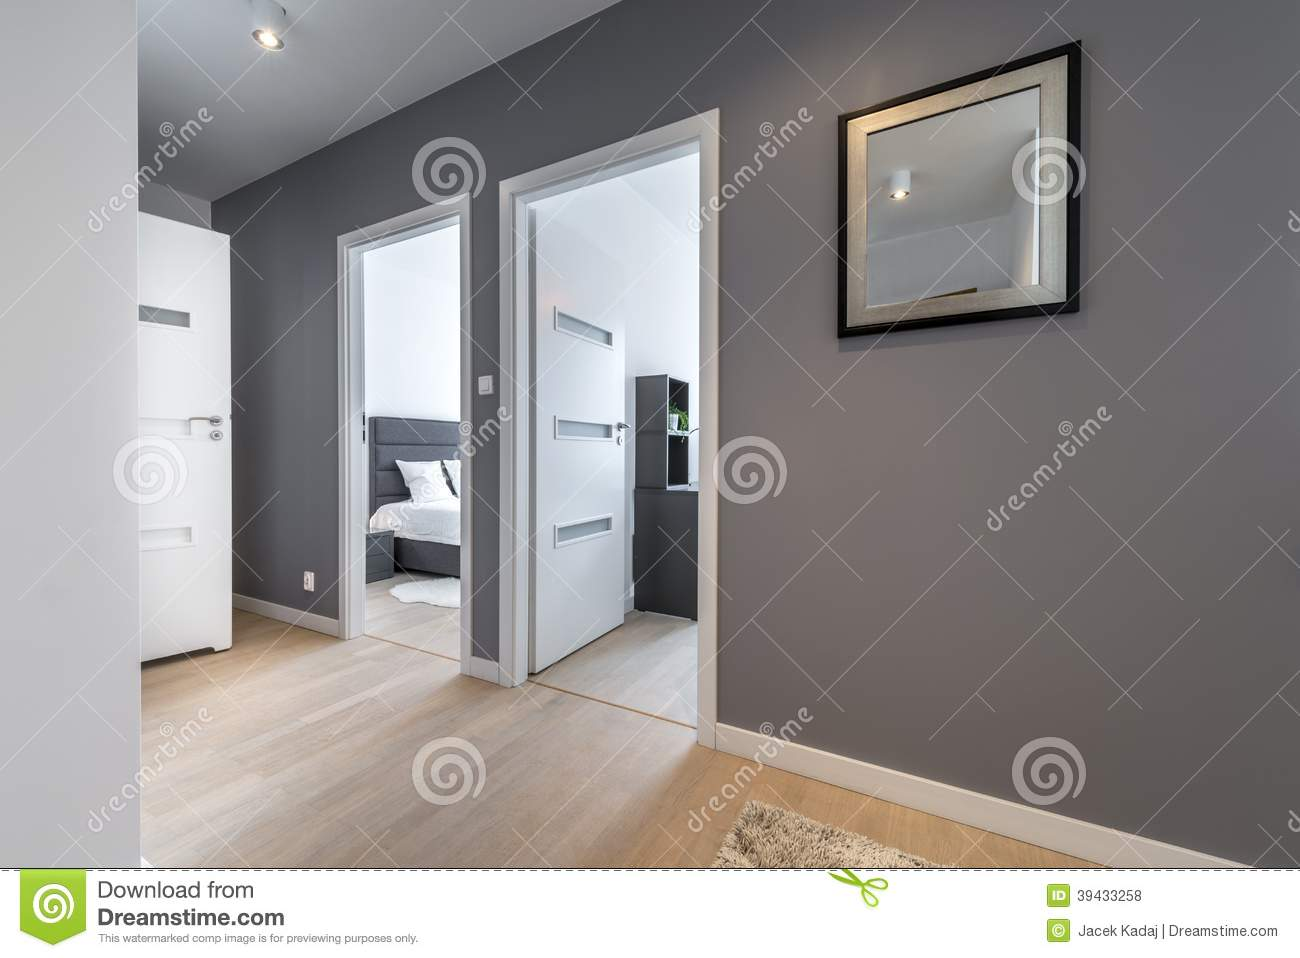 Couloir En Appartement Moderne Photo stock - Image: 39433258